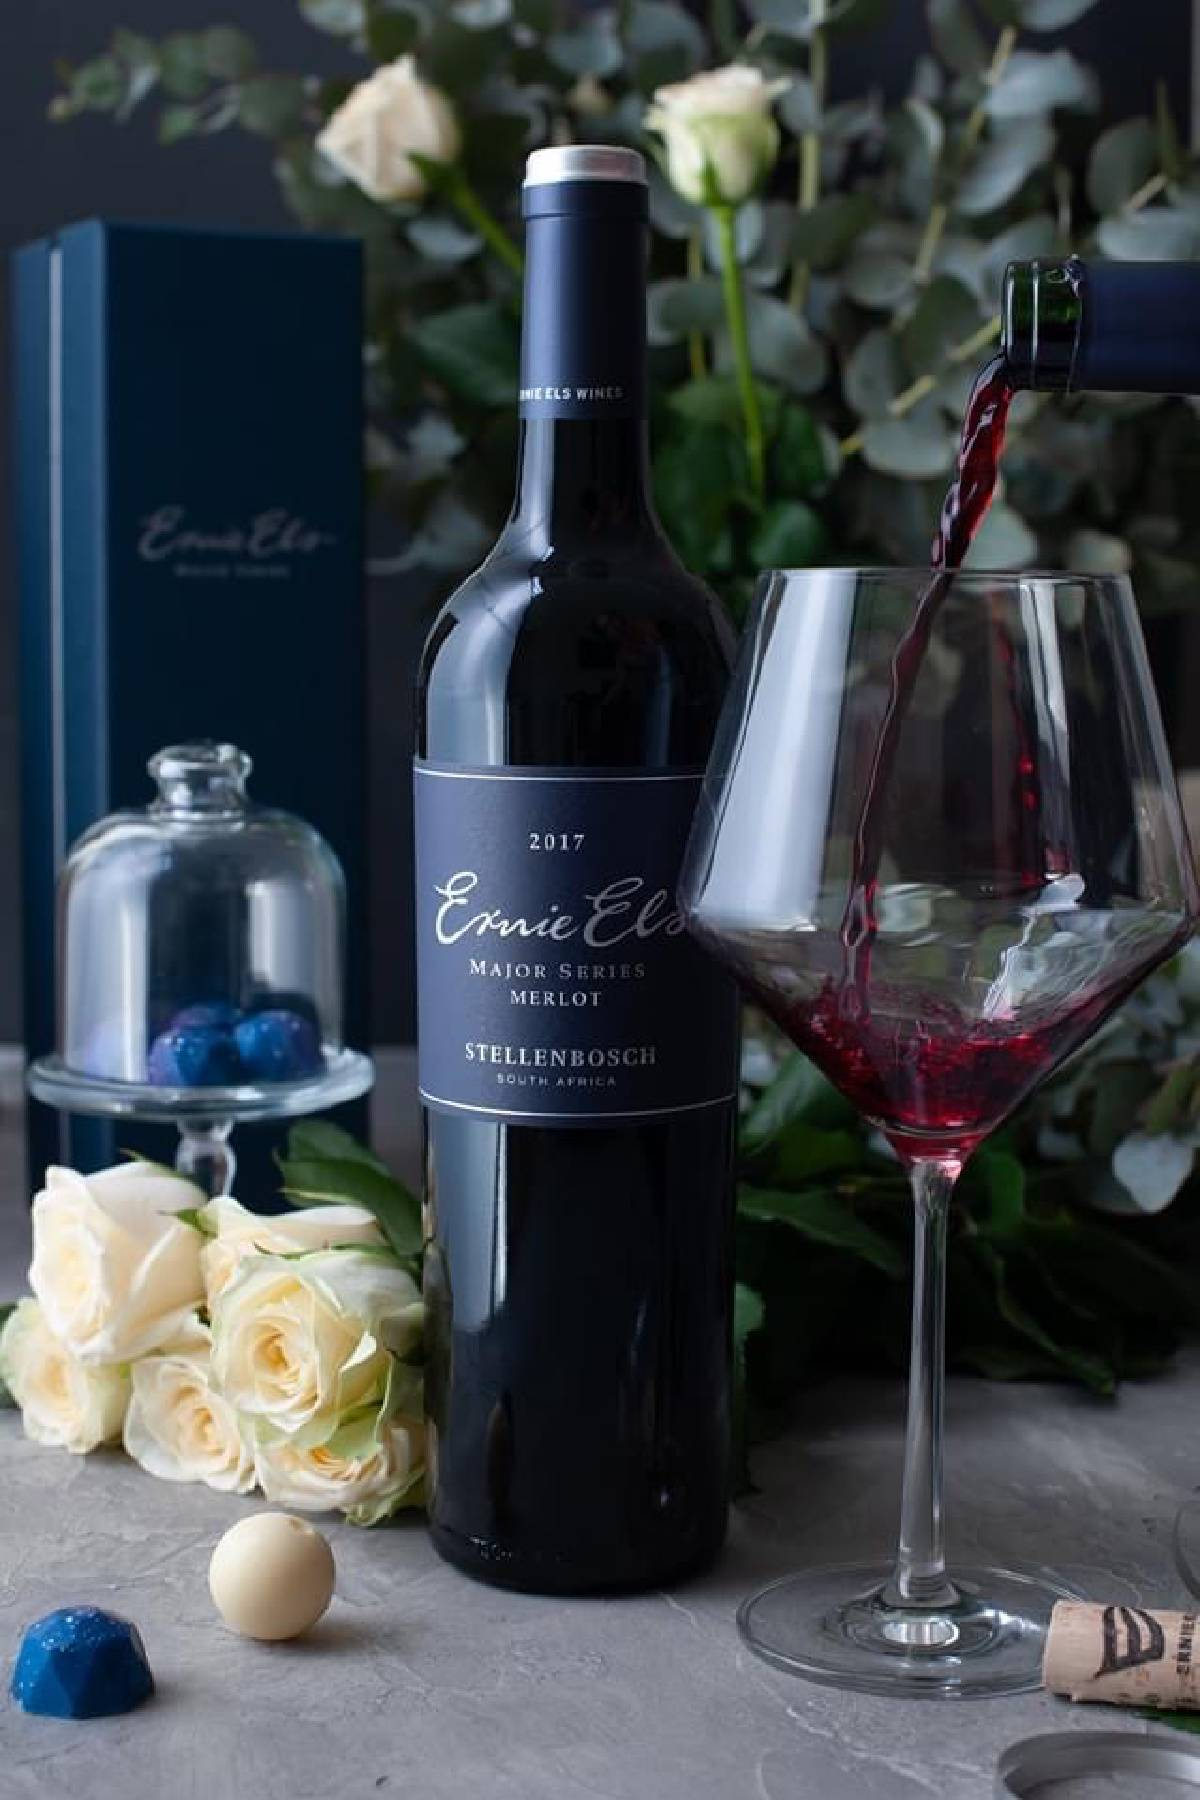 Ernie Els Cabernet Sauvignon Major Series